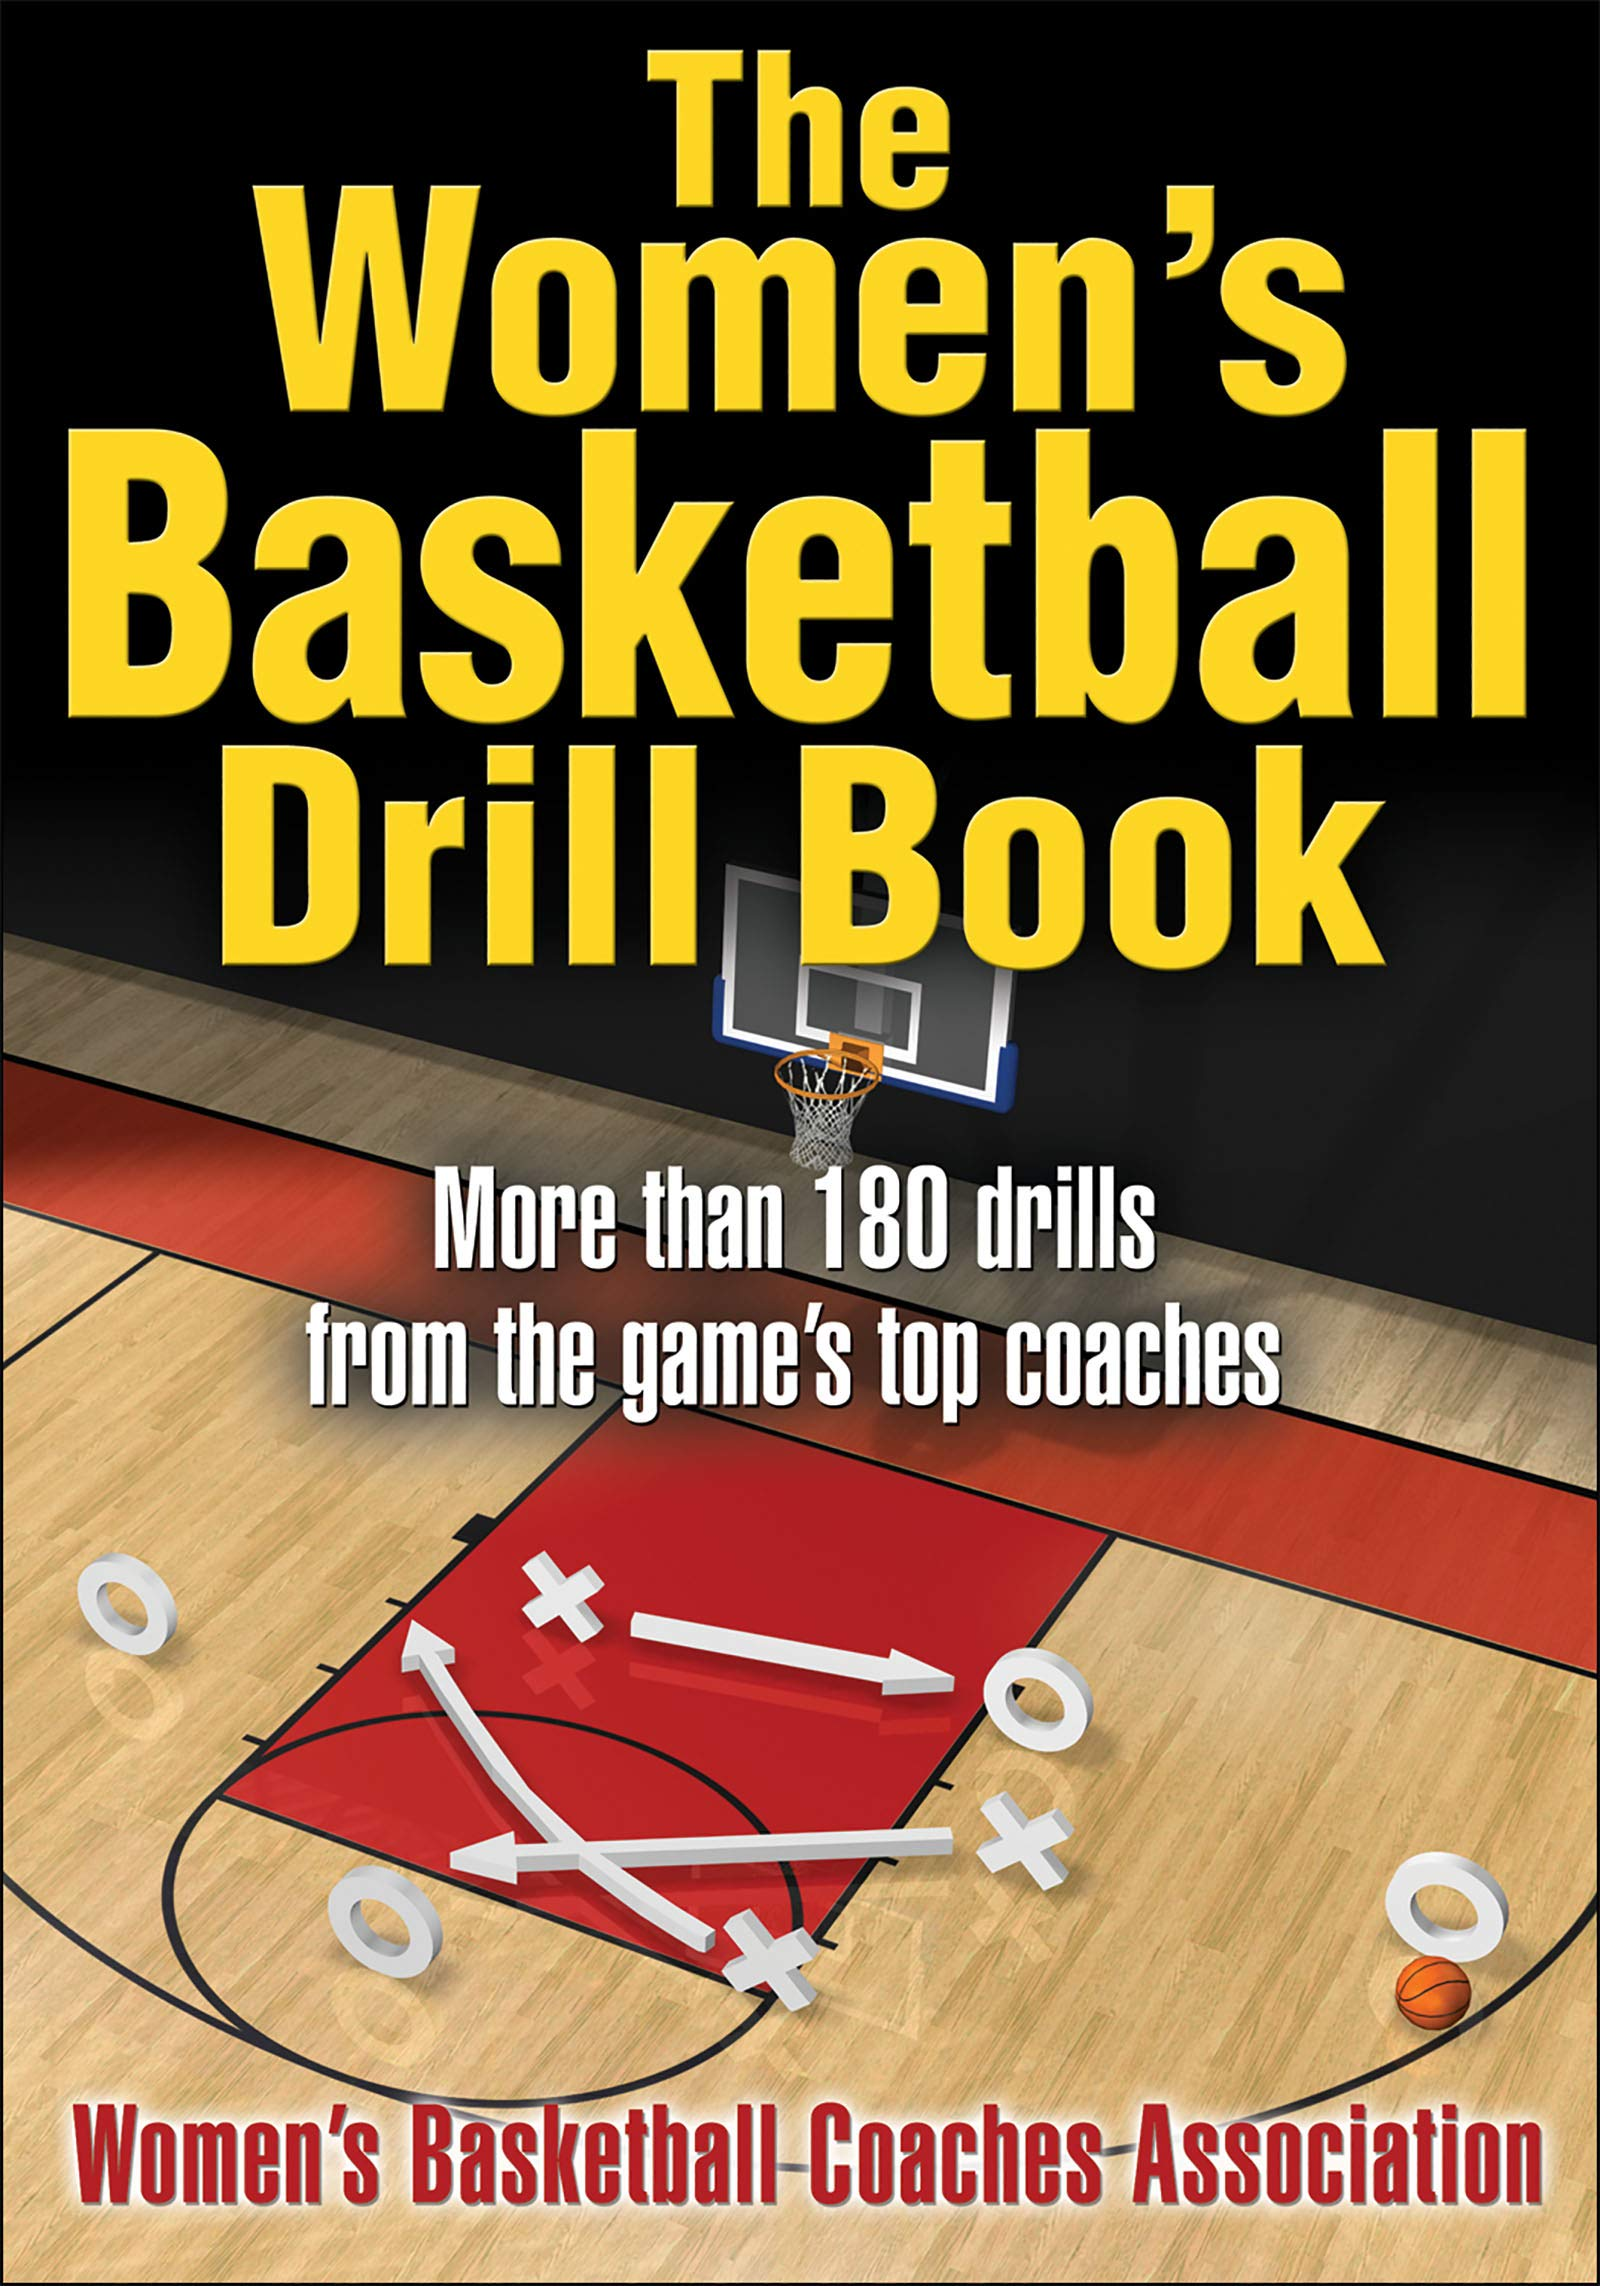 Image OfThe Women's Basketball Drill Book